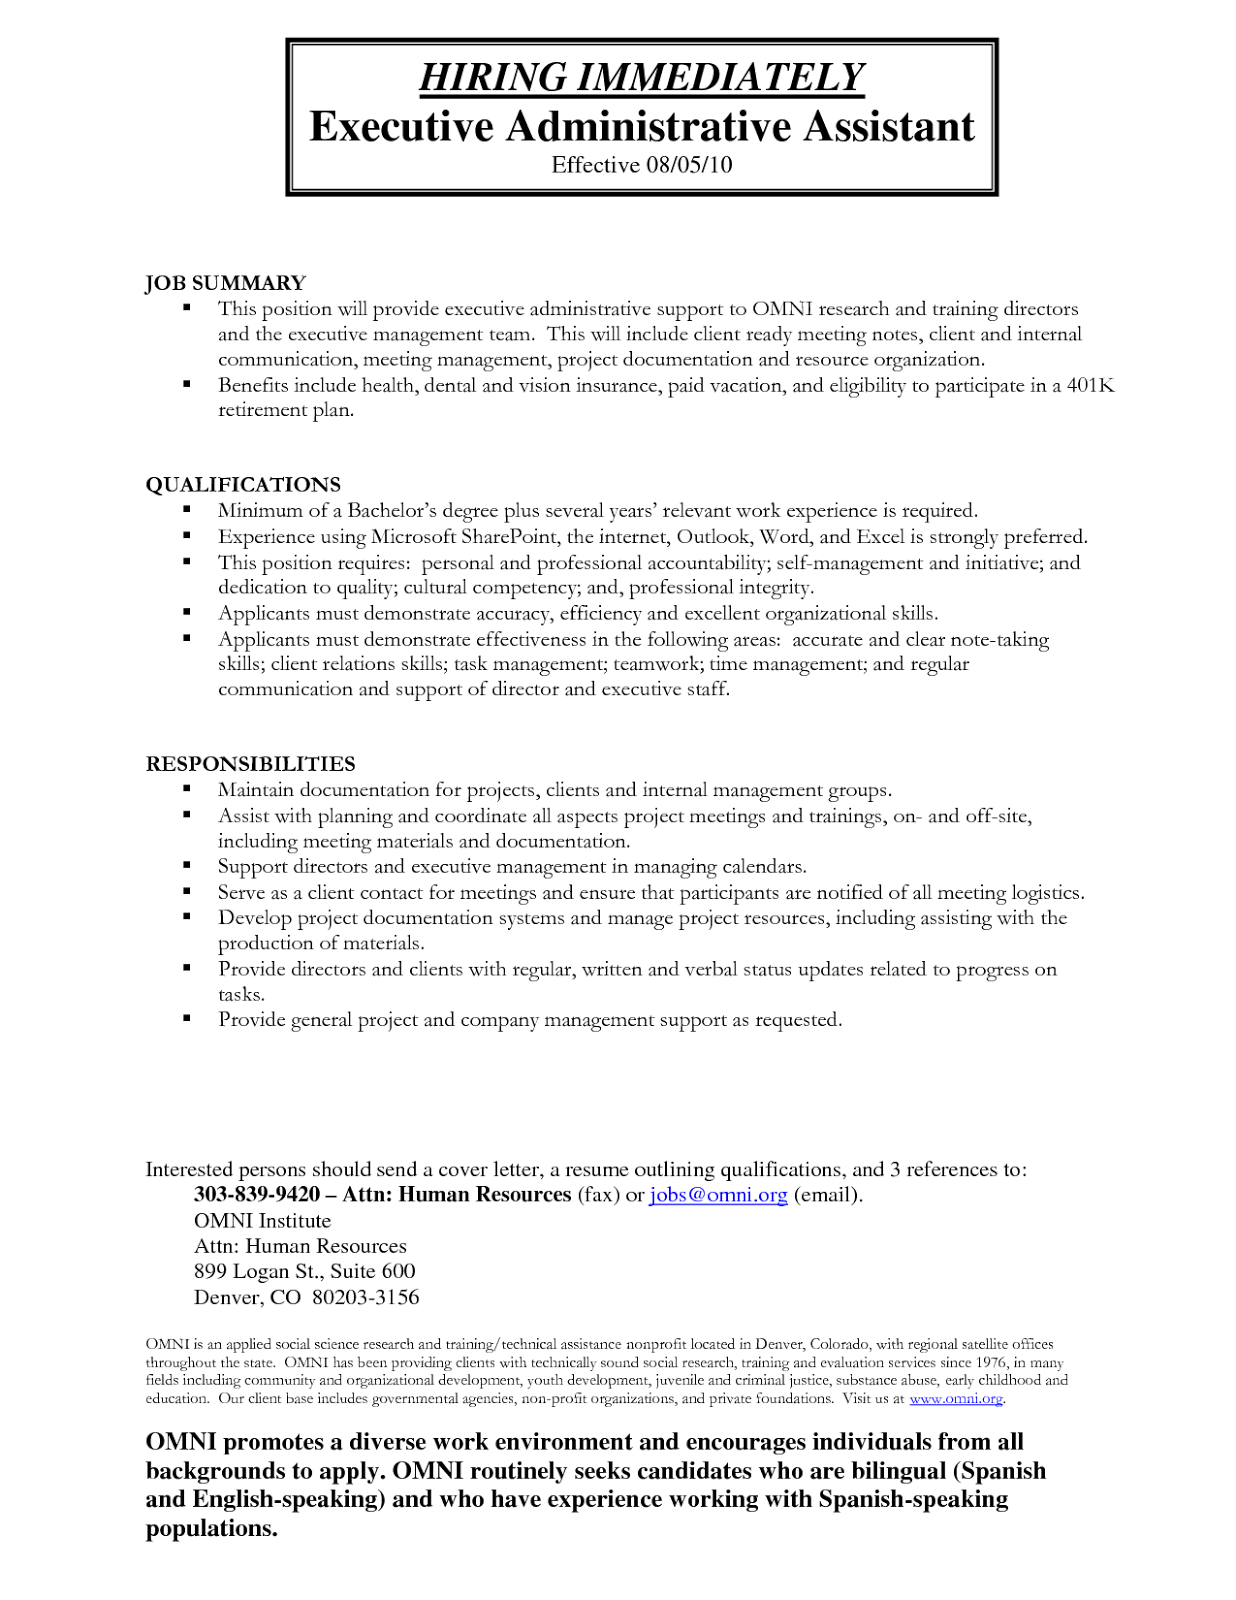 Chronological Resume Sample  Executive Administrative Assistant happytom co